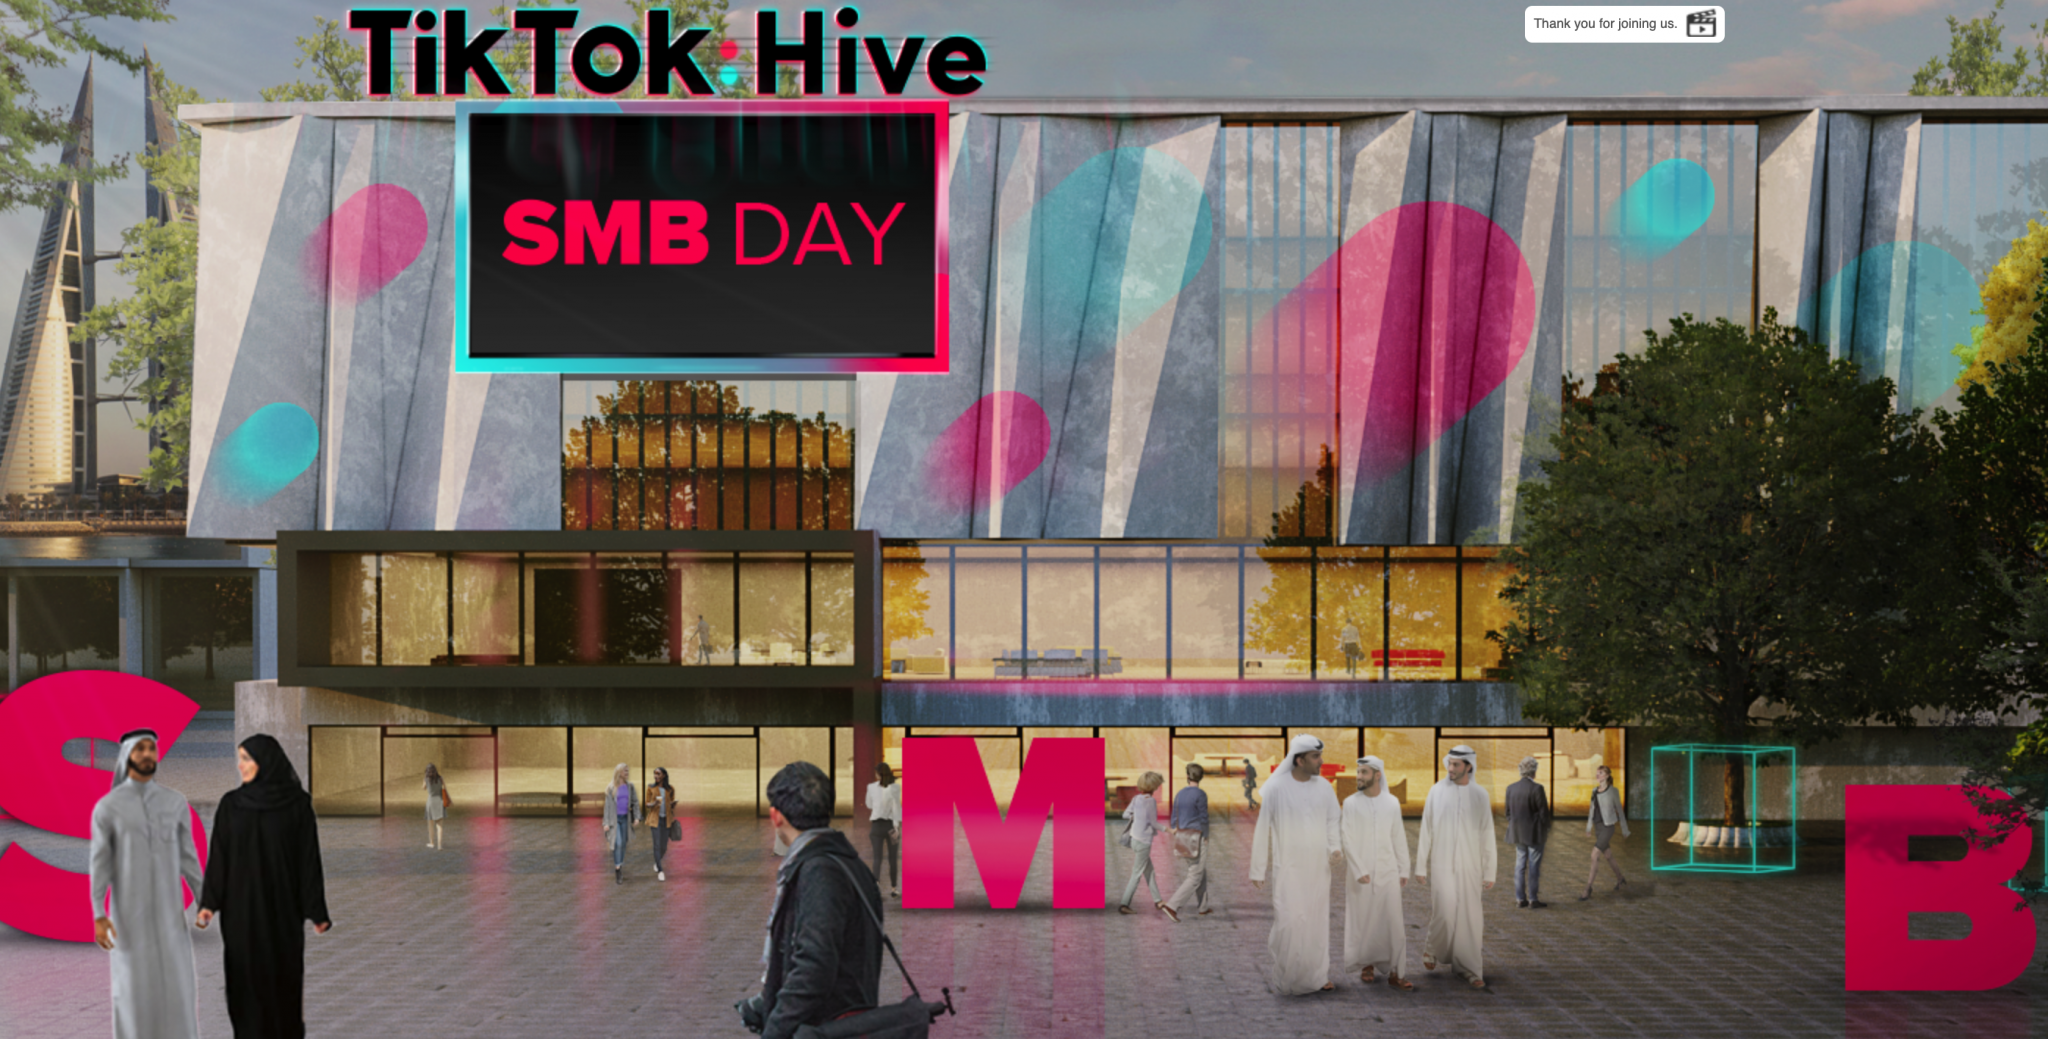 smb-day-at-the-tik-tok-hive